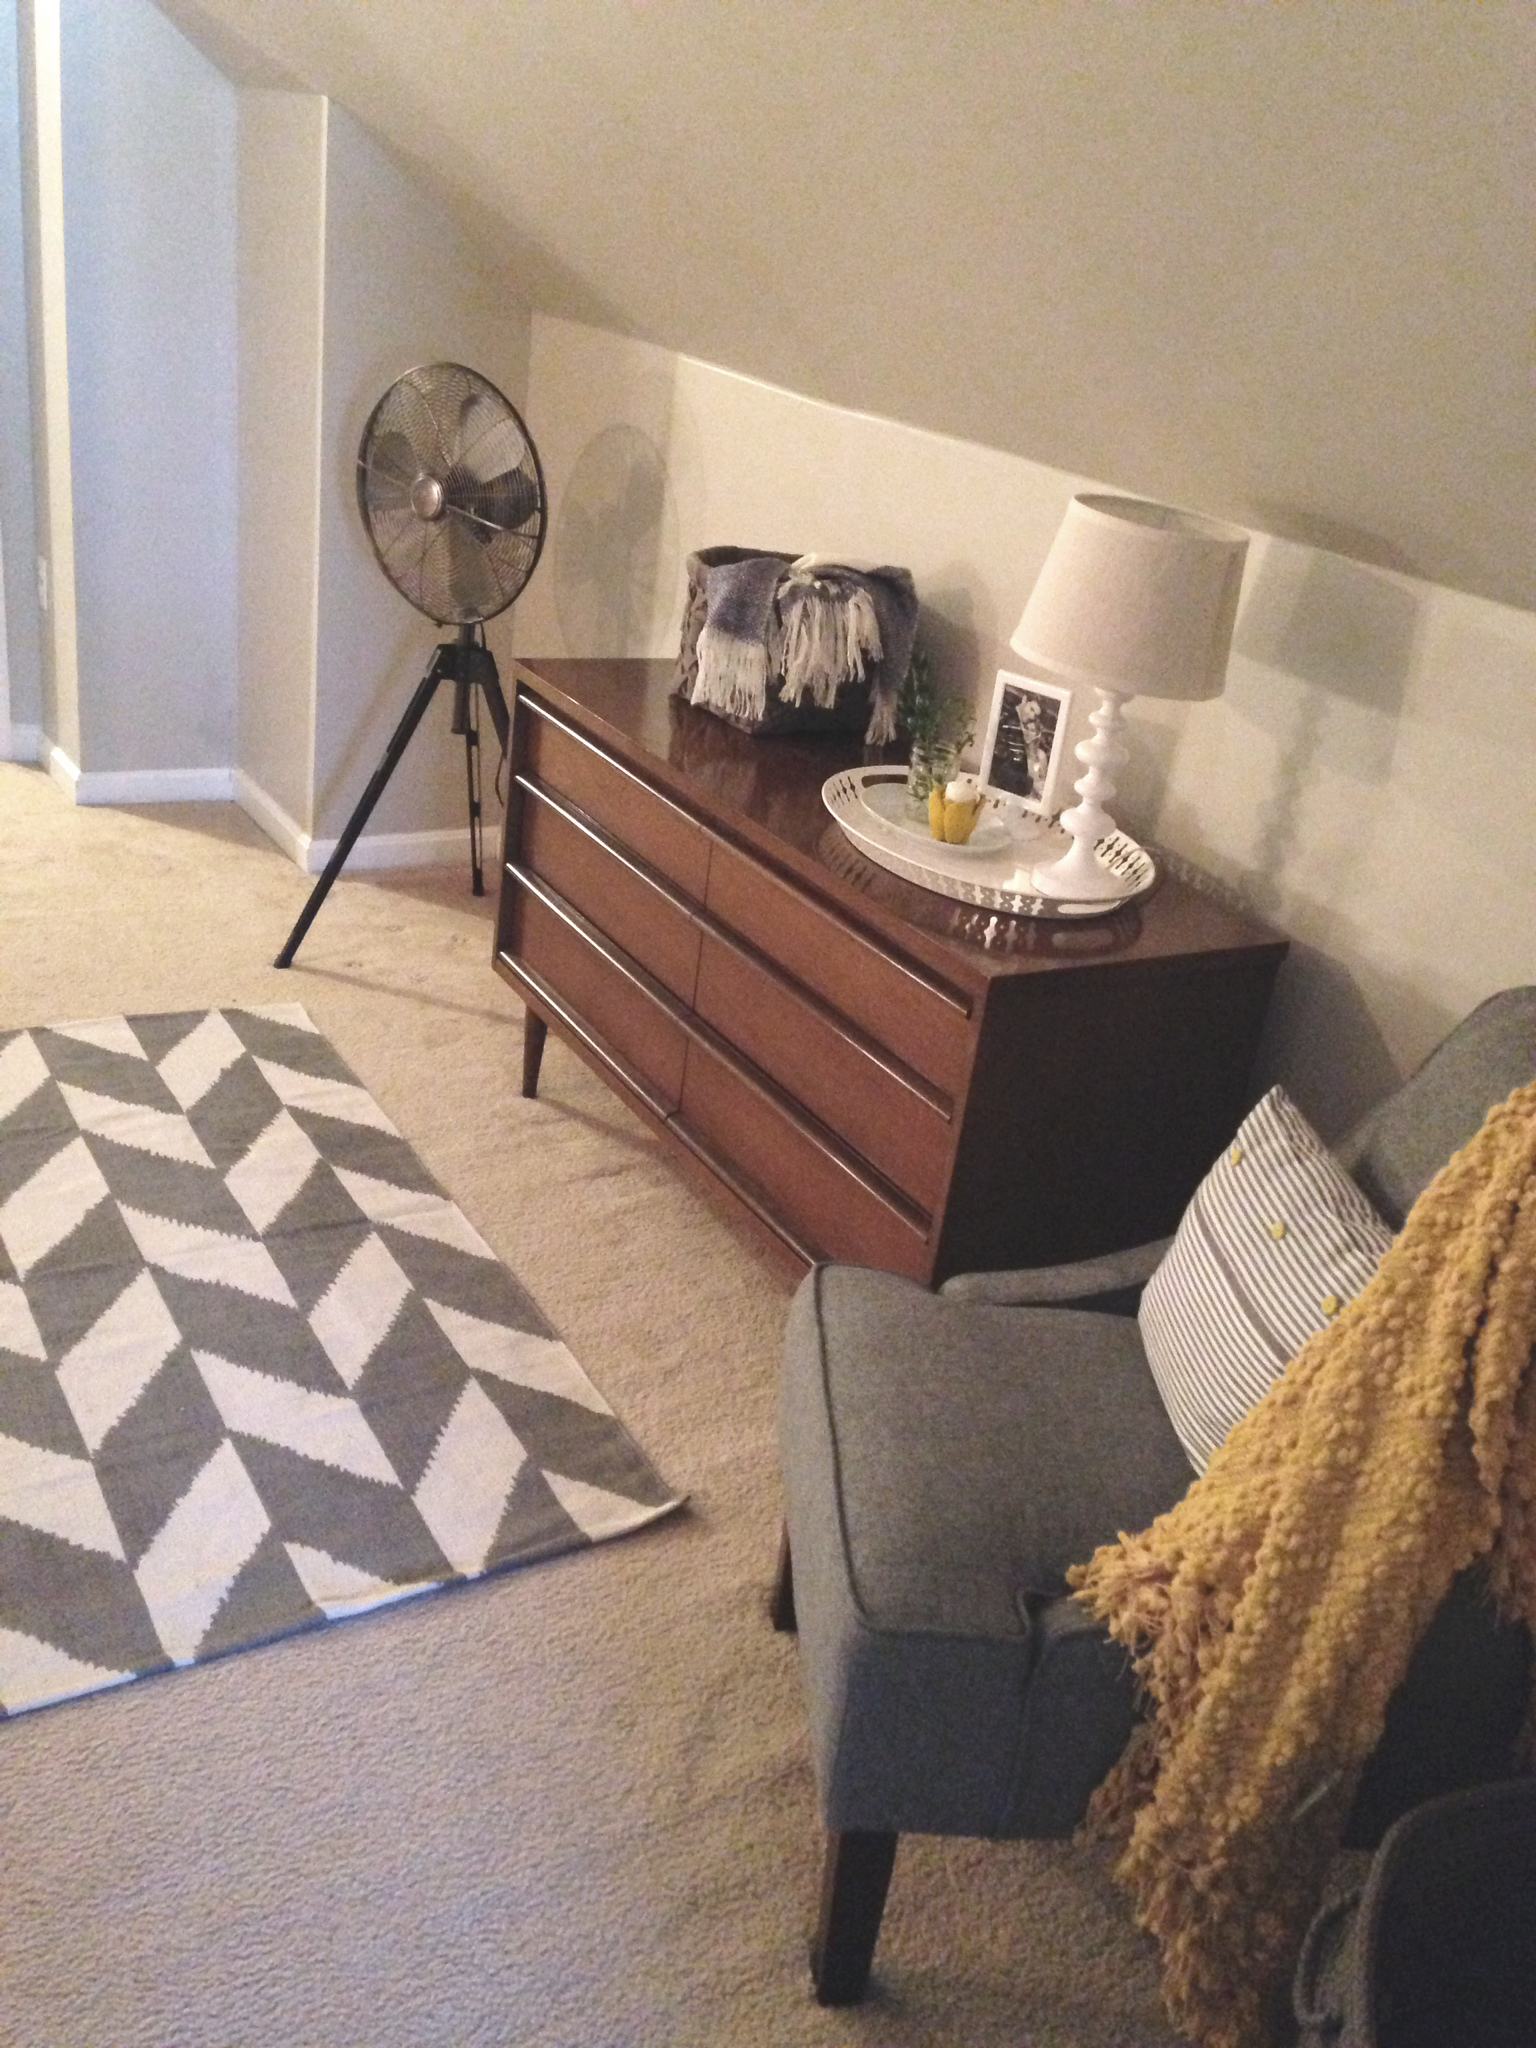 Here is the aforementioned dresser and a chair I picked up for cheap at Target. I made the throw pillow from a pillow case I got for a couple bucks in the IKEA as-is section. The Hunter fan was on end of season clearance at Target for less than $30. I love it.